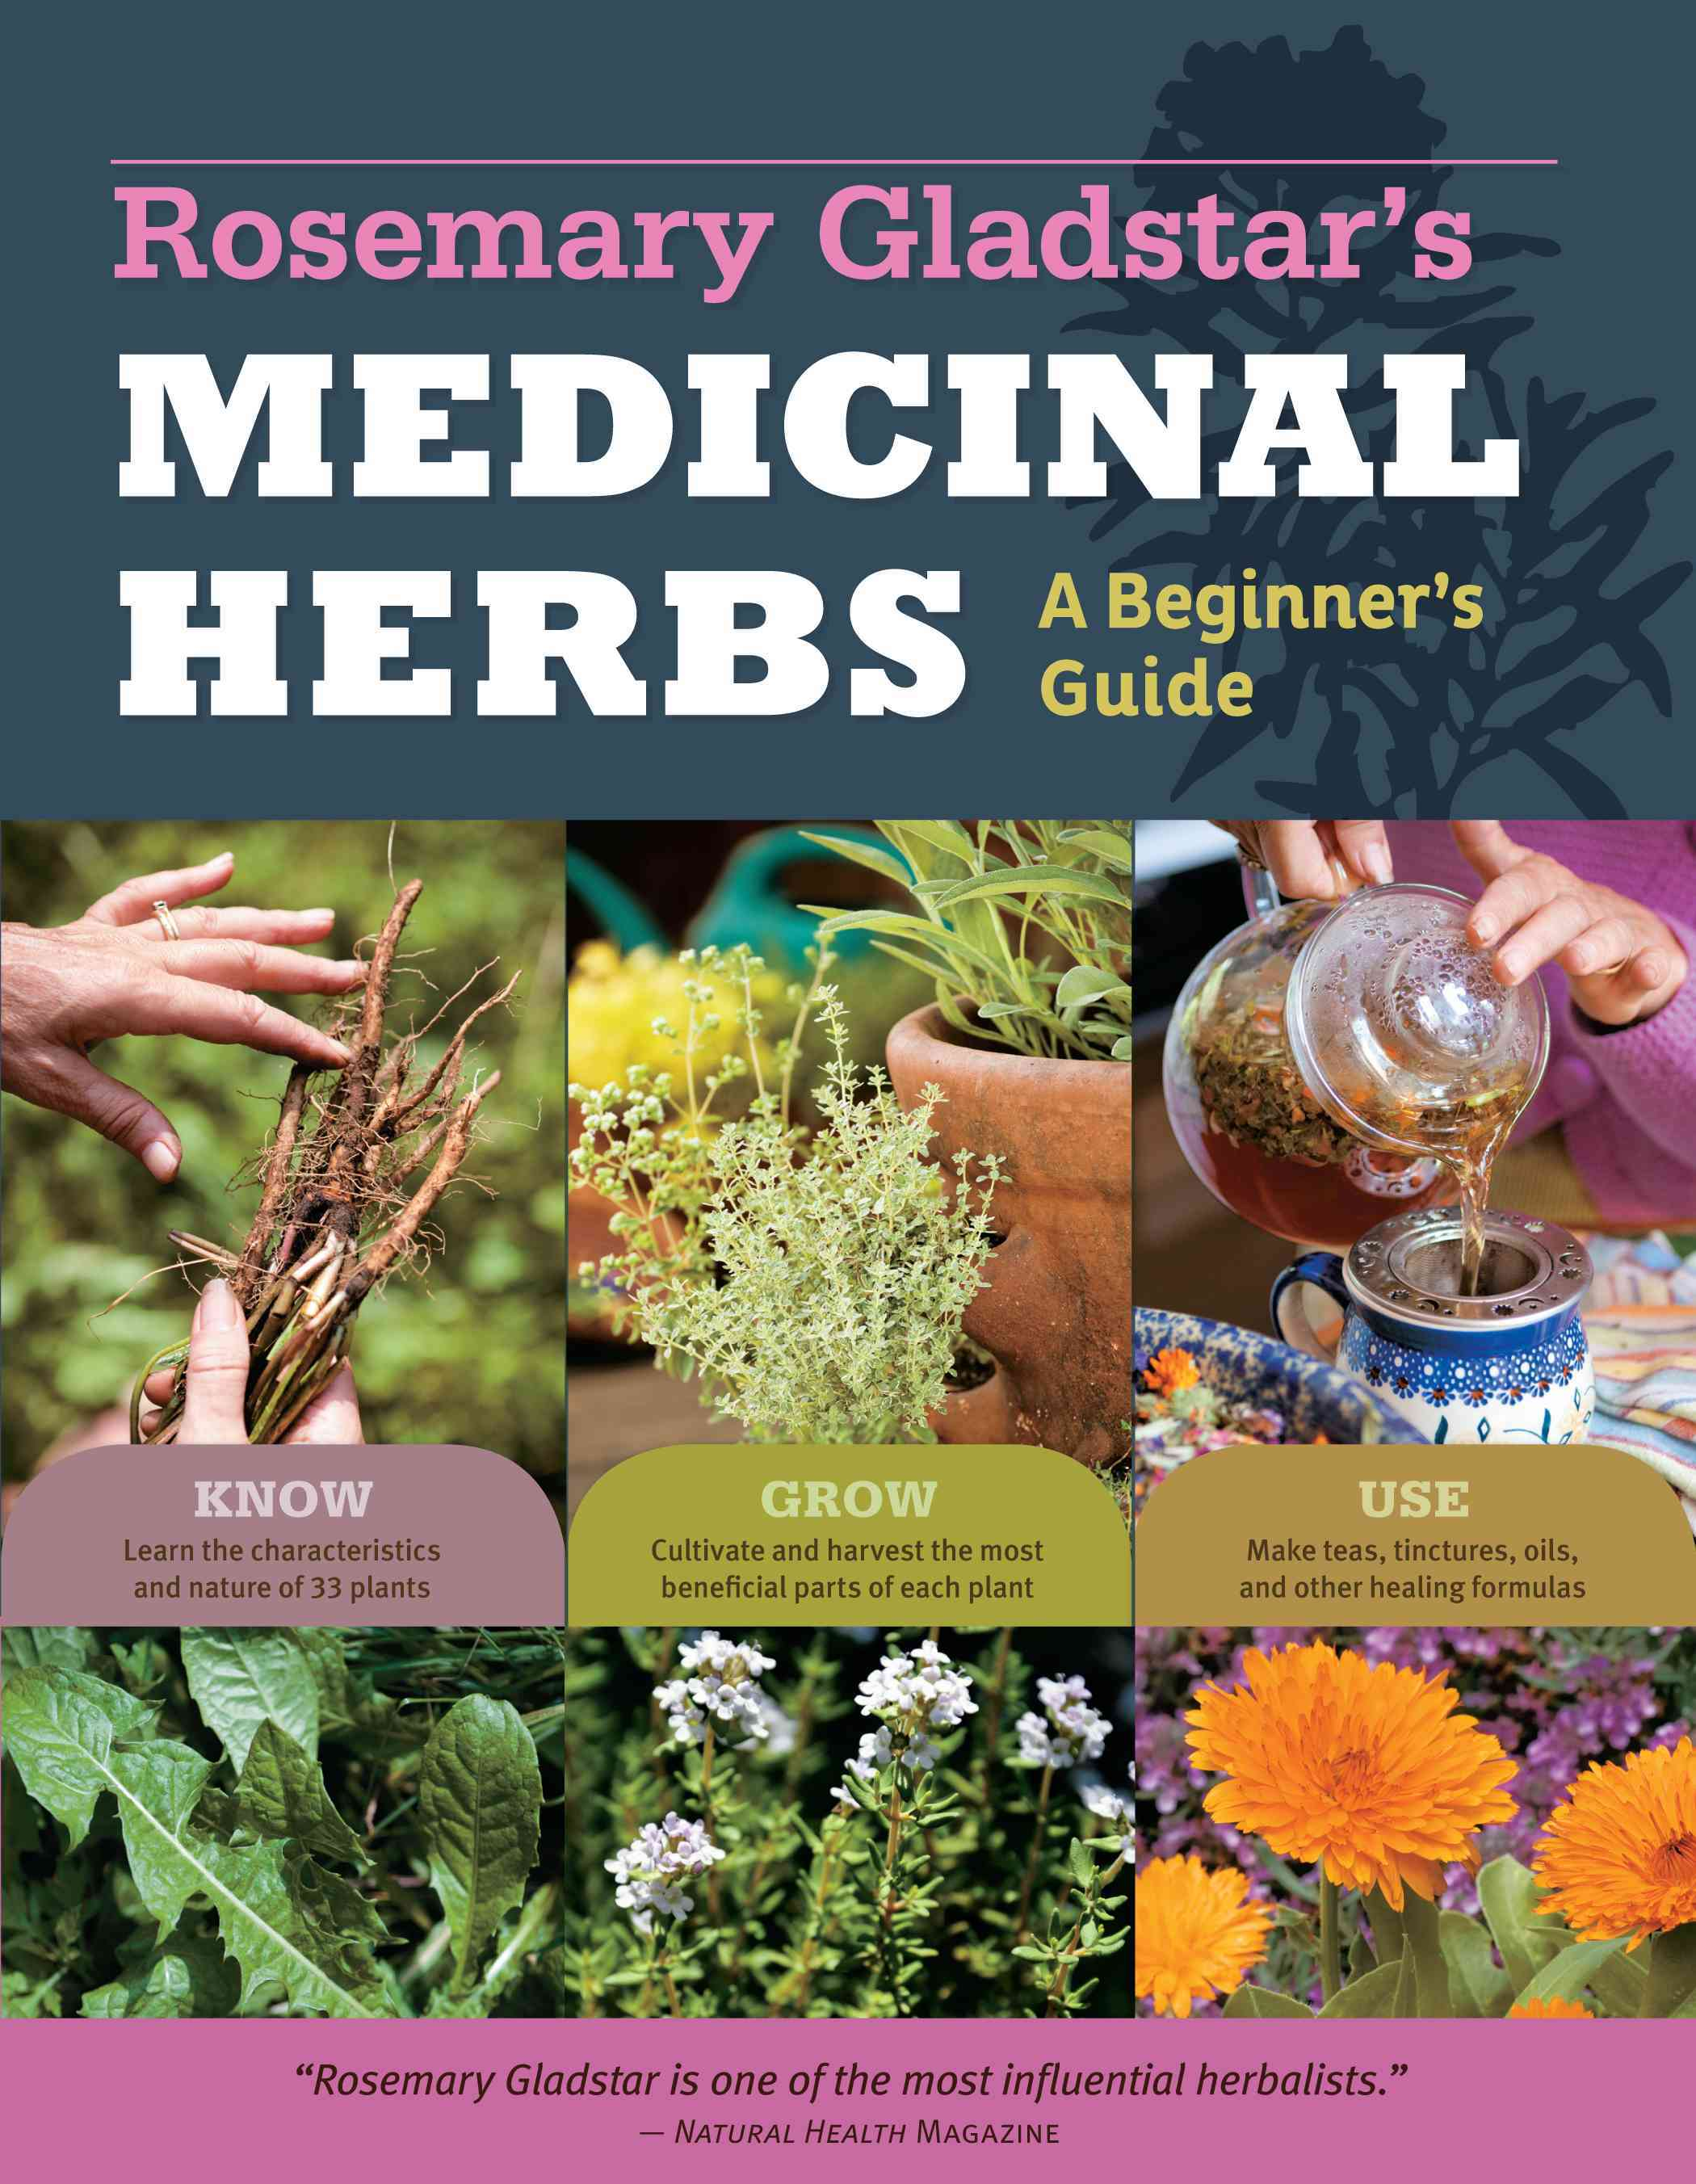 Rosemary Gladstar's Medicinal Herbs: A Beginner's Guide (Paperback)